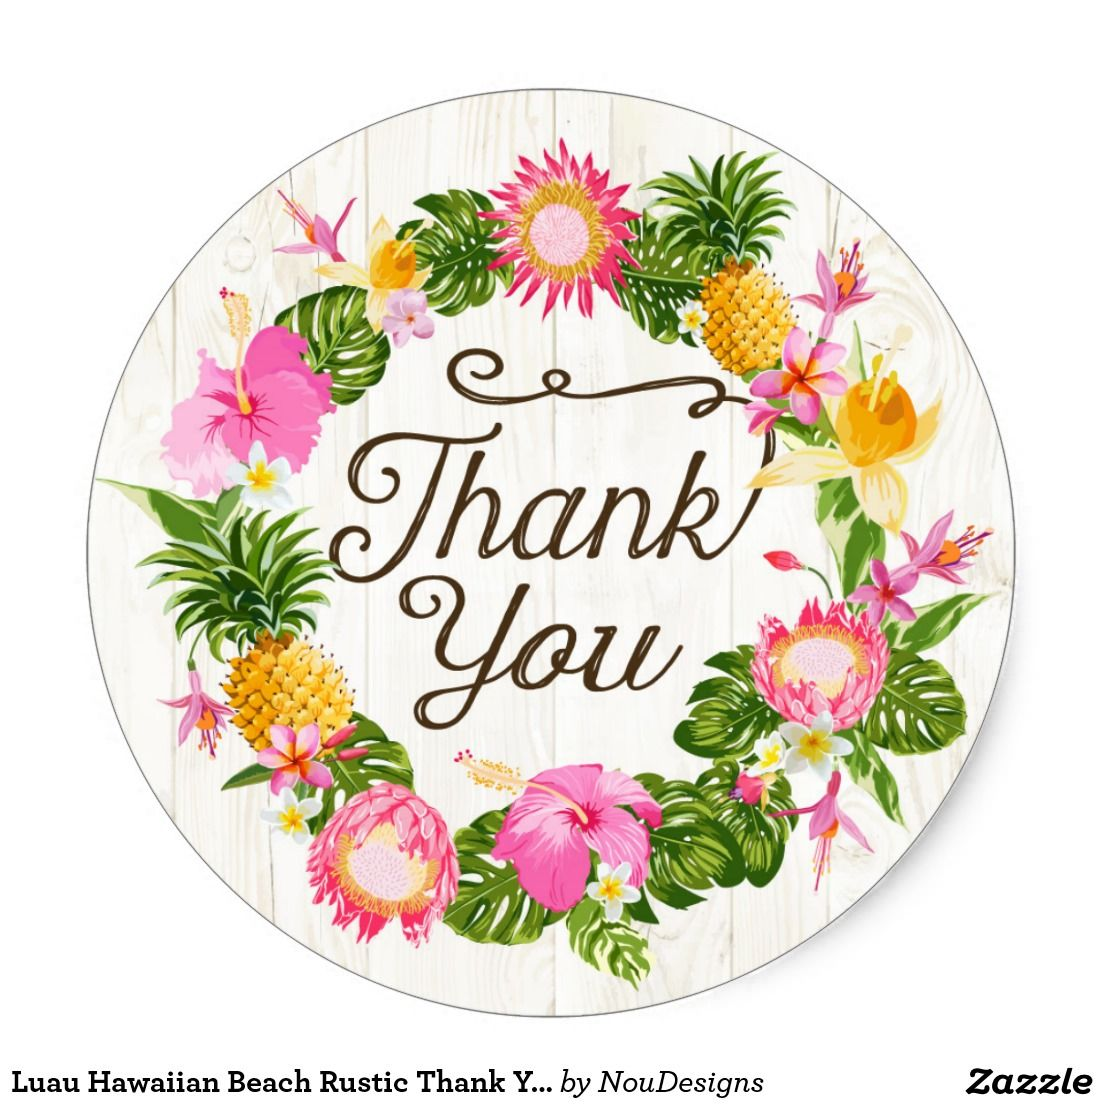 Luau Hawaiian Beach Rustic Thank You Label And Tropical Floral White Wood Background Design